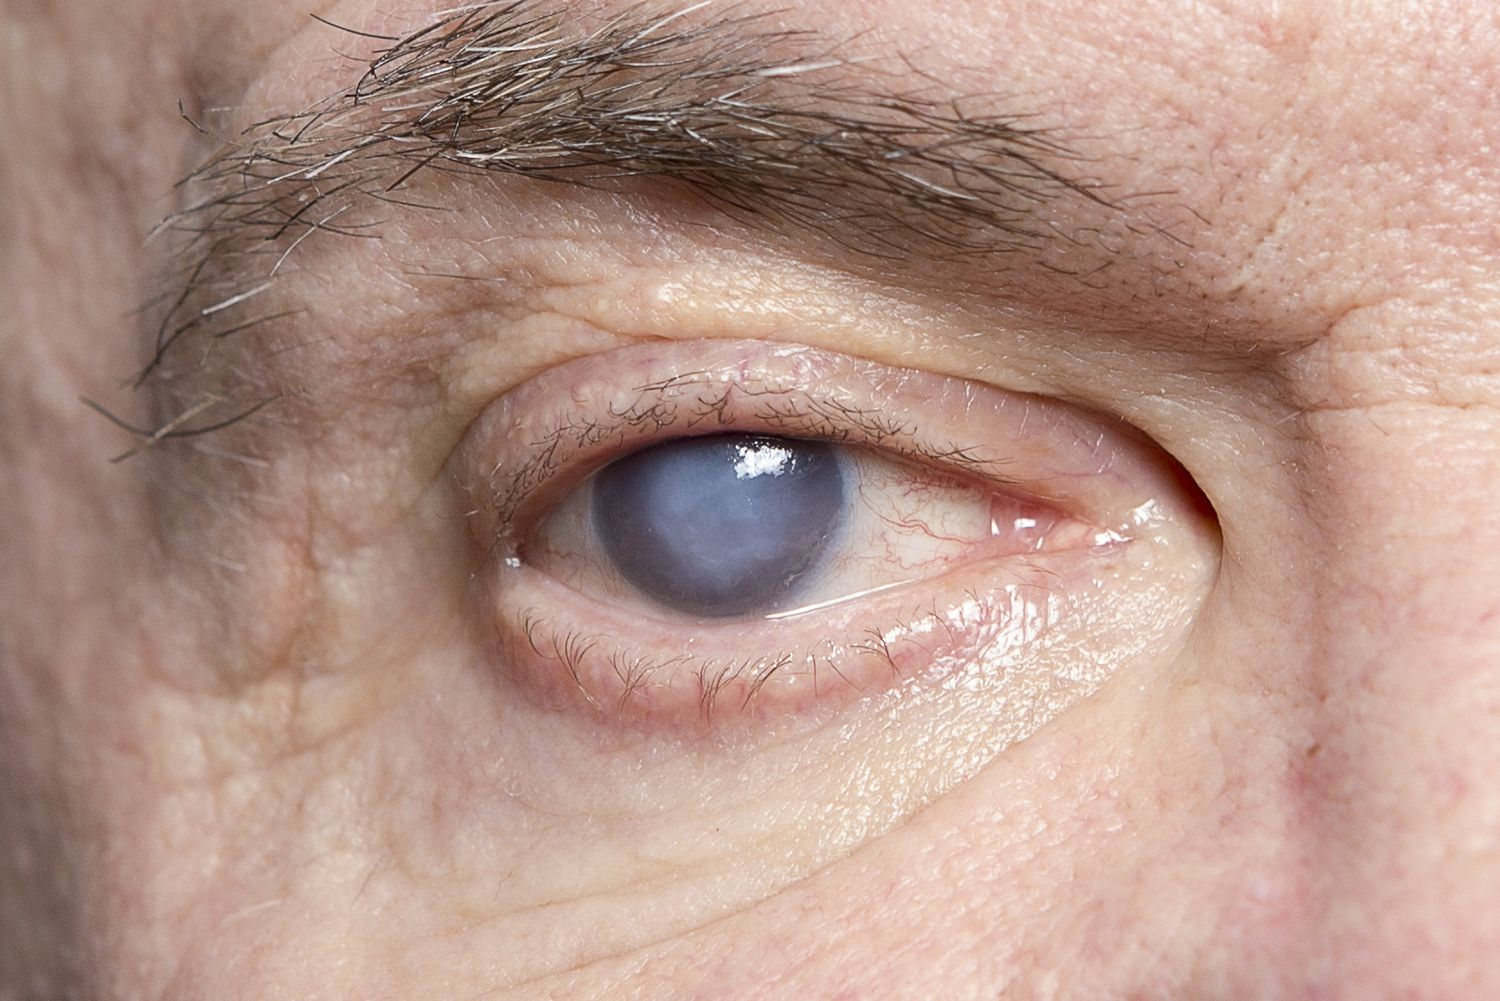 Close-up of gray, clouded right eye of an older man